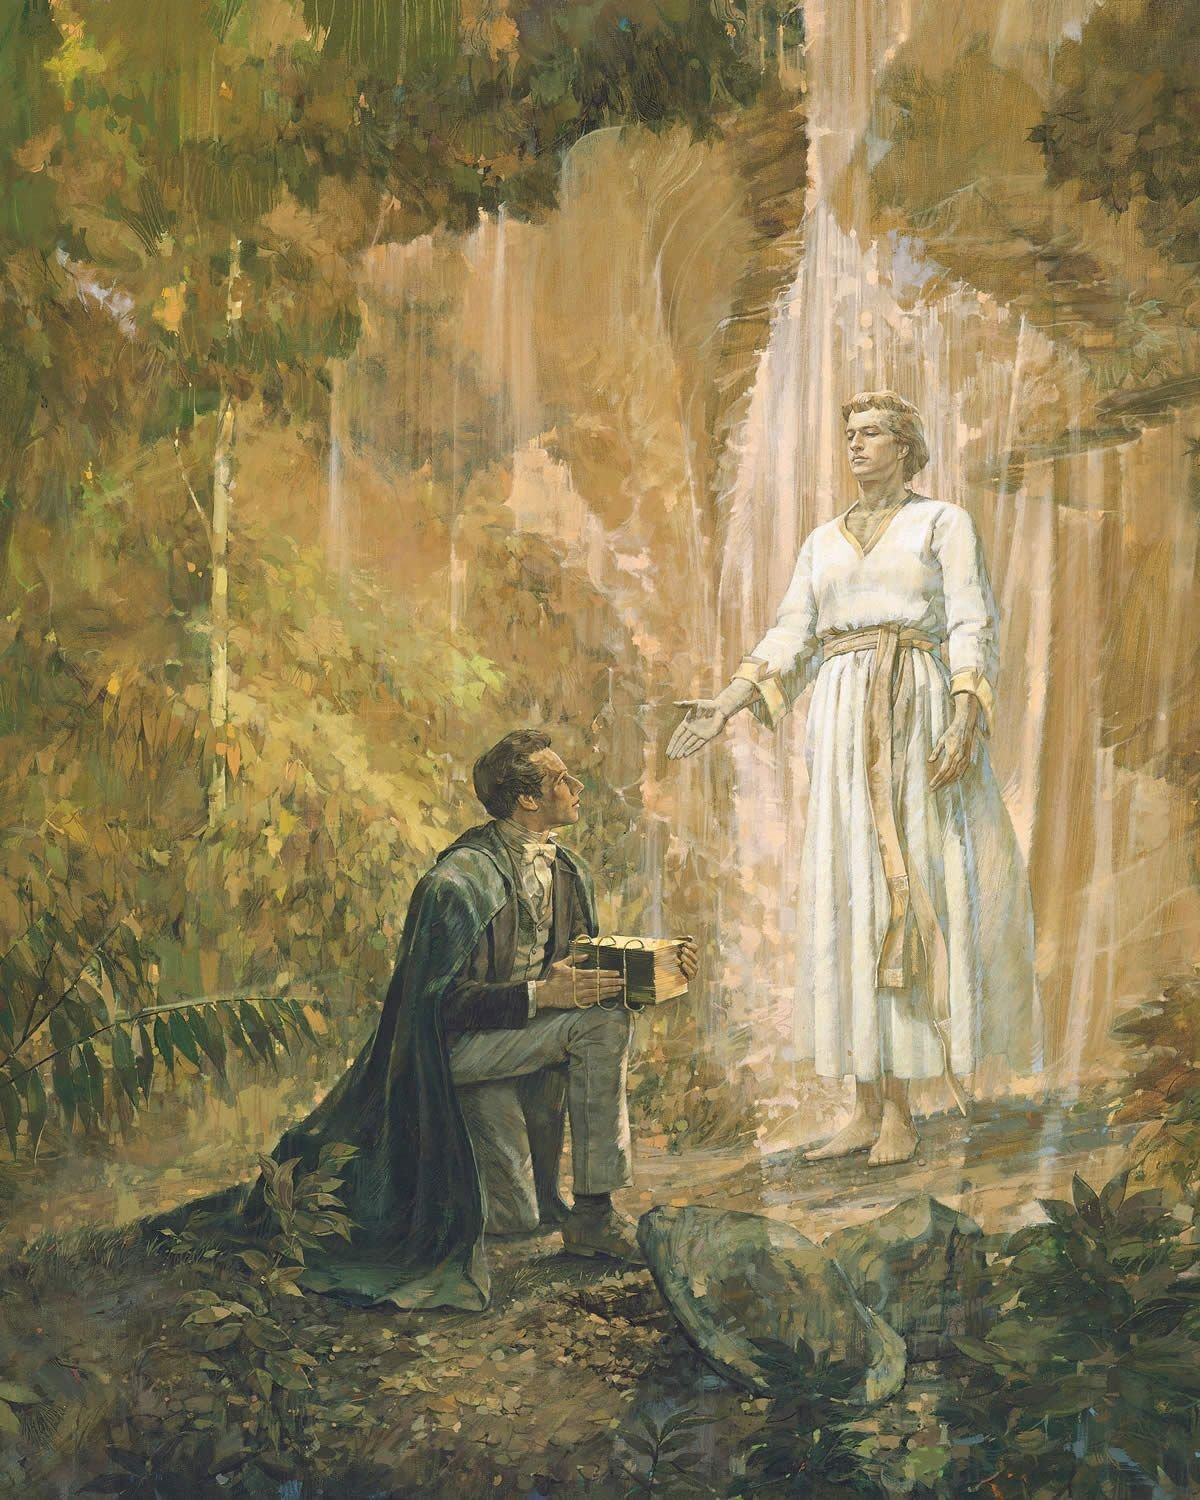 Moroni returns and further instructs the young prophet